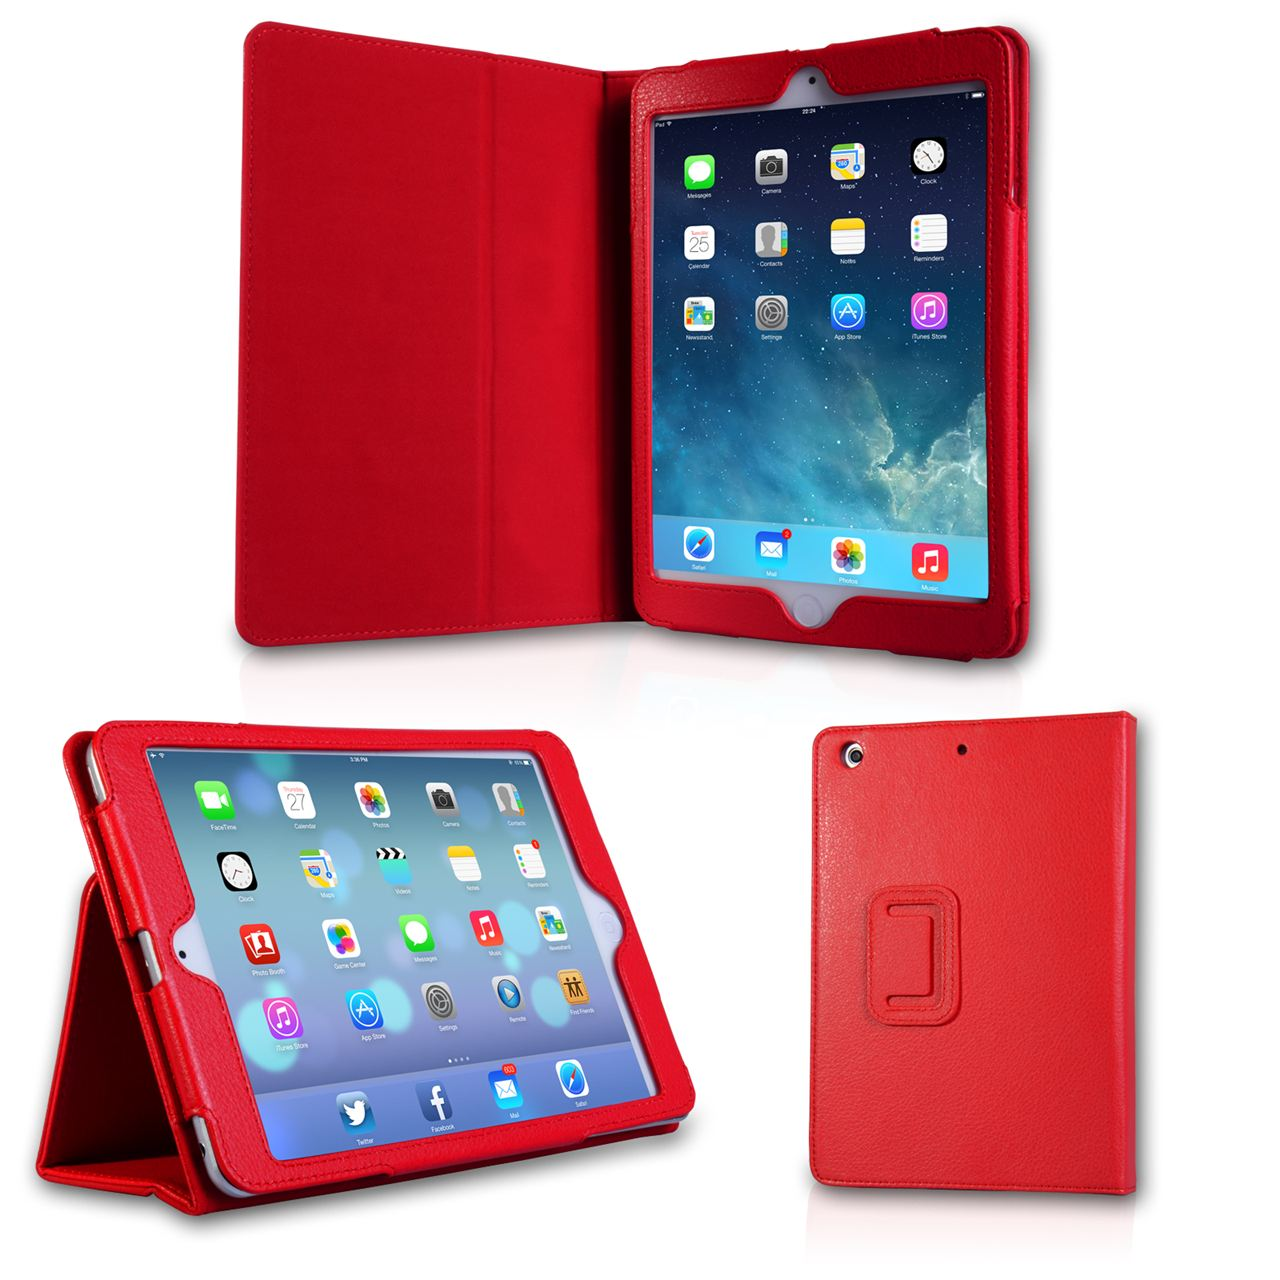 Caseflex iPad Mini 2 Textured Faux Leather Stand Case - Red